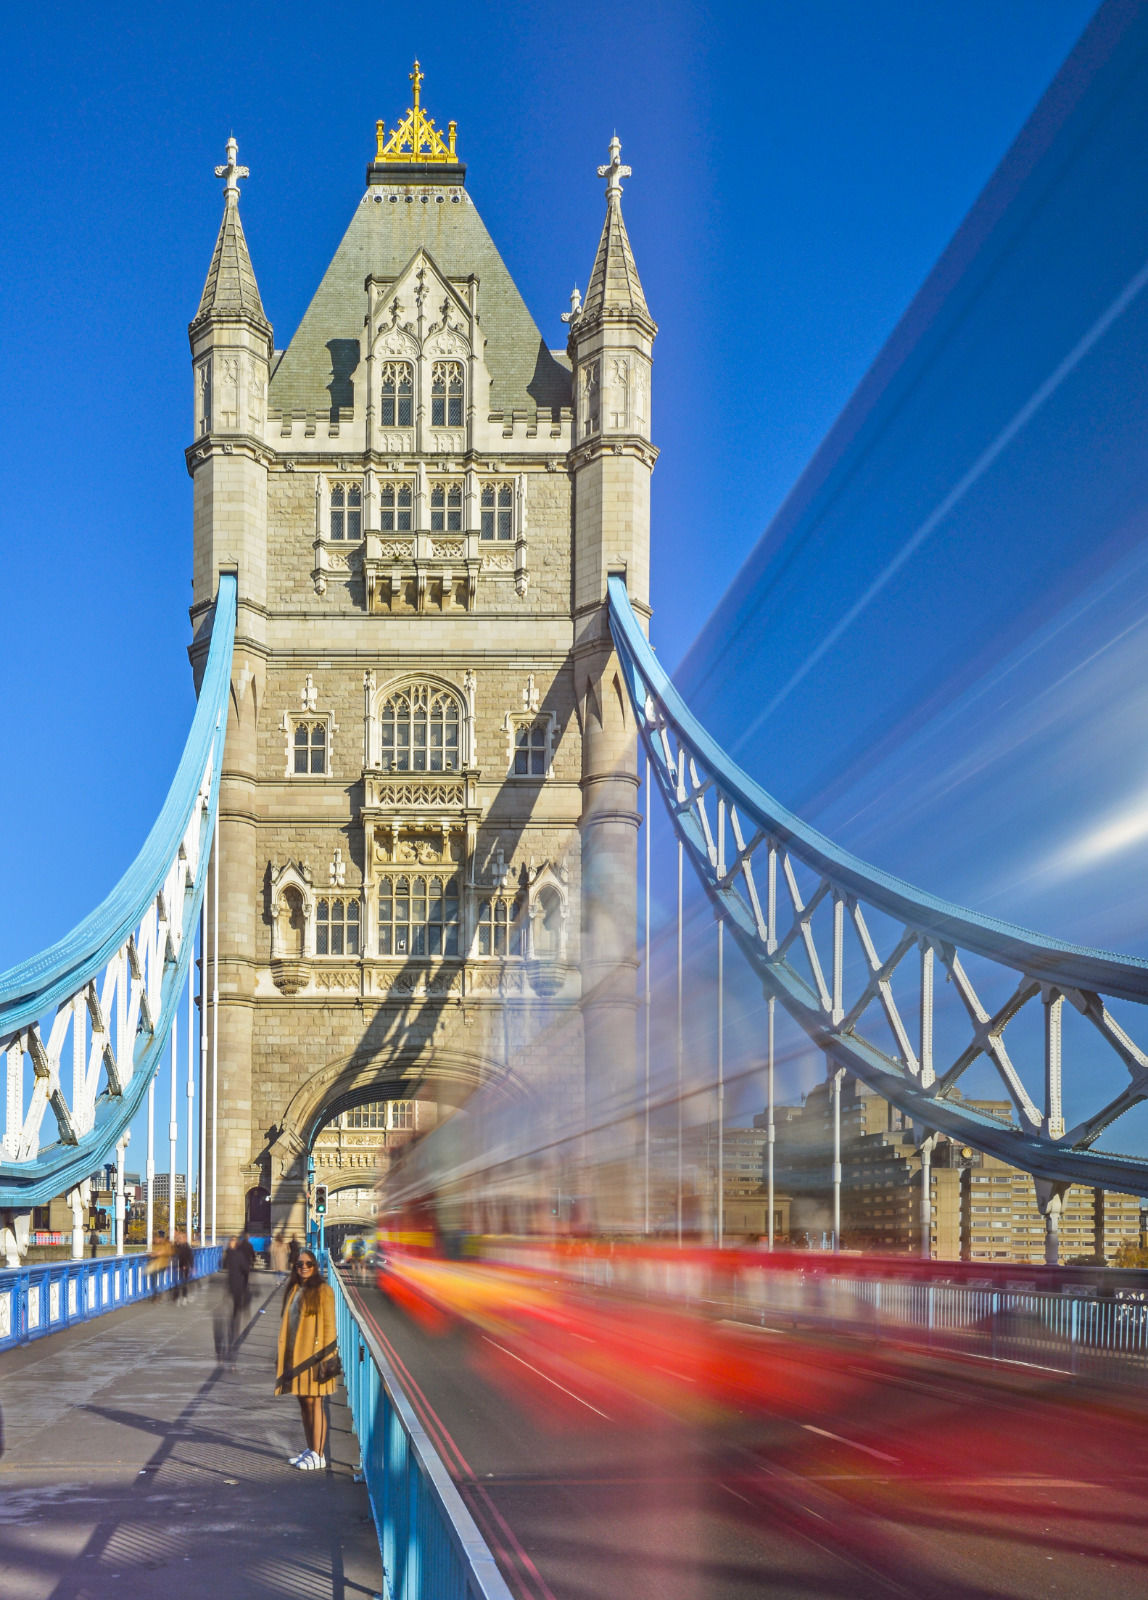 local london area photo tower bridge with red bus